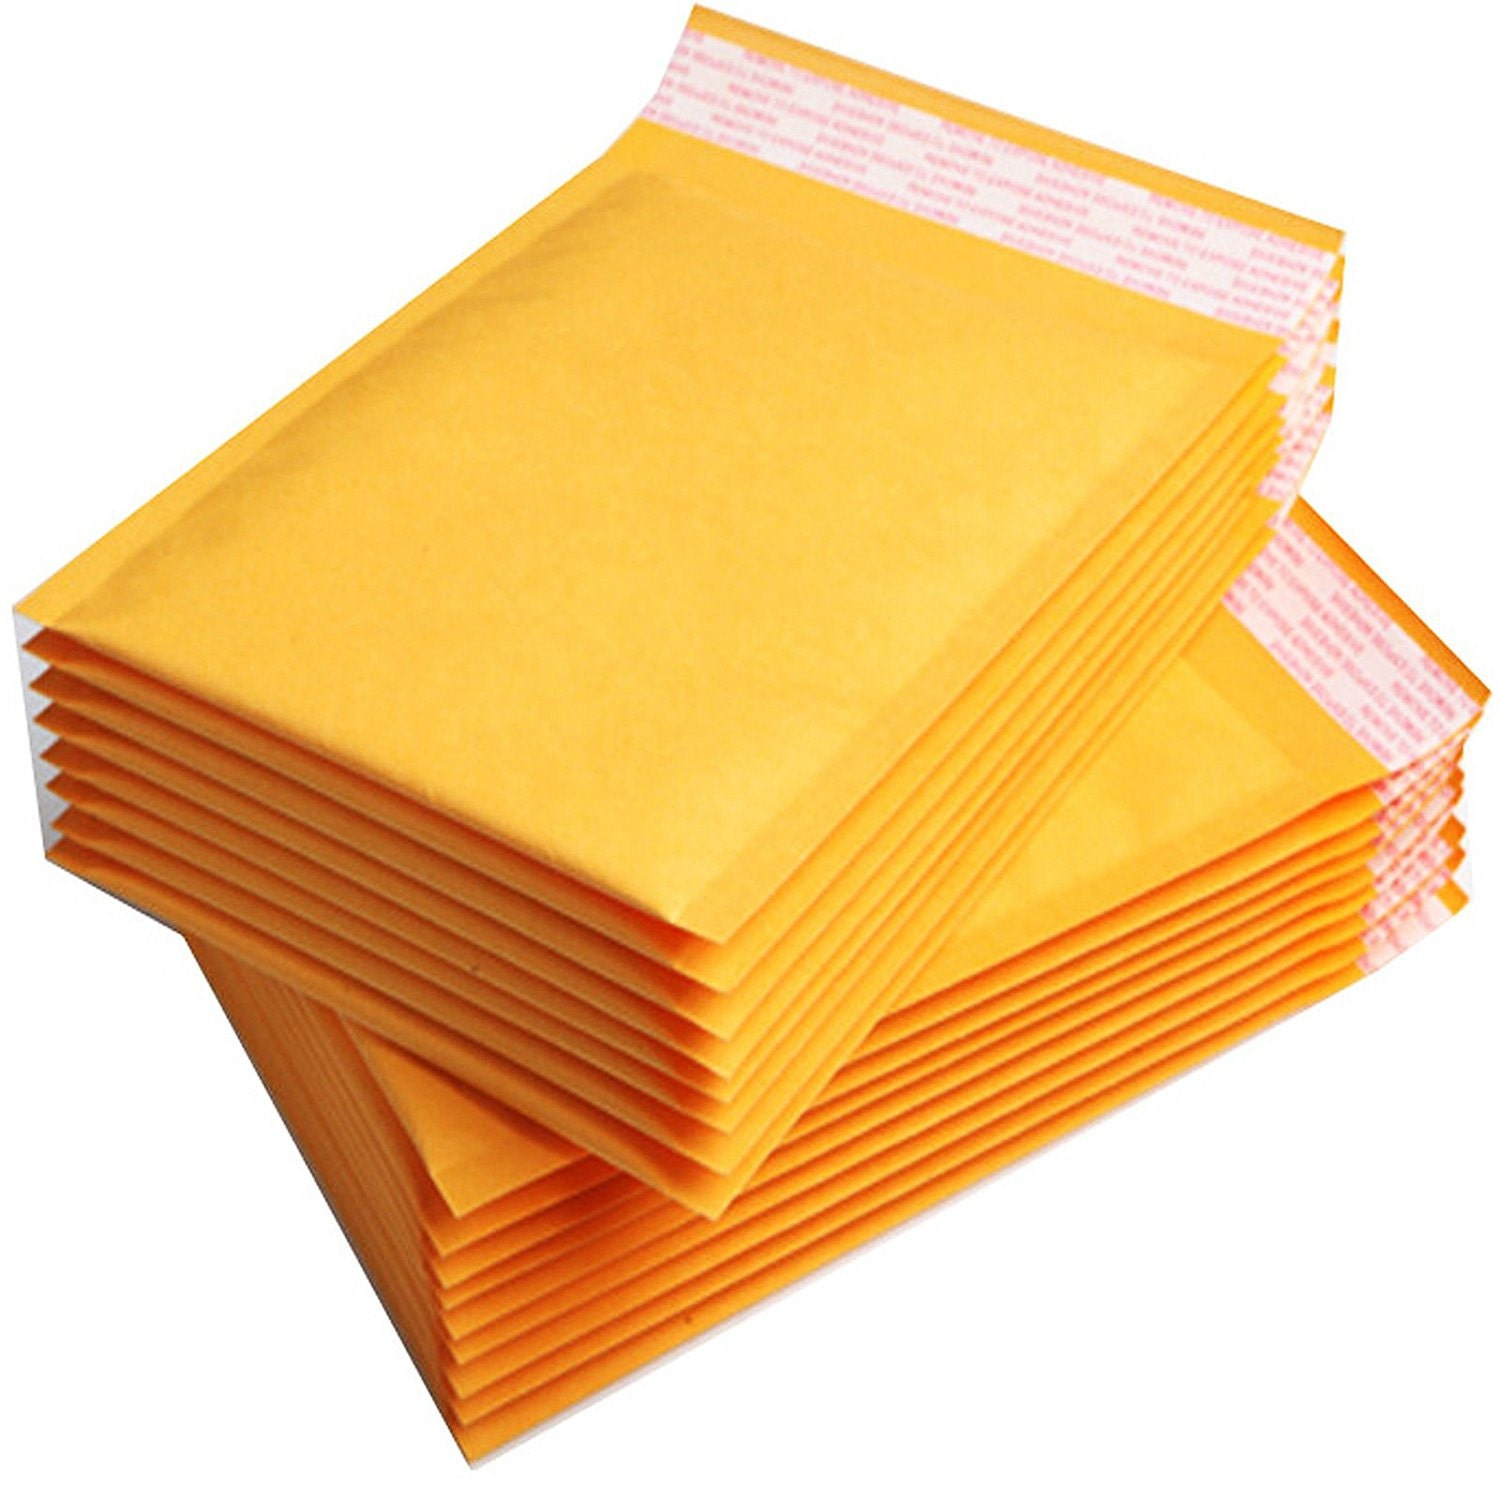 230x340mm bubble mailers envelopes padded by envelopescenter